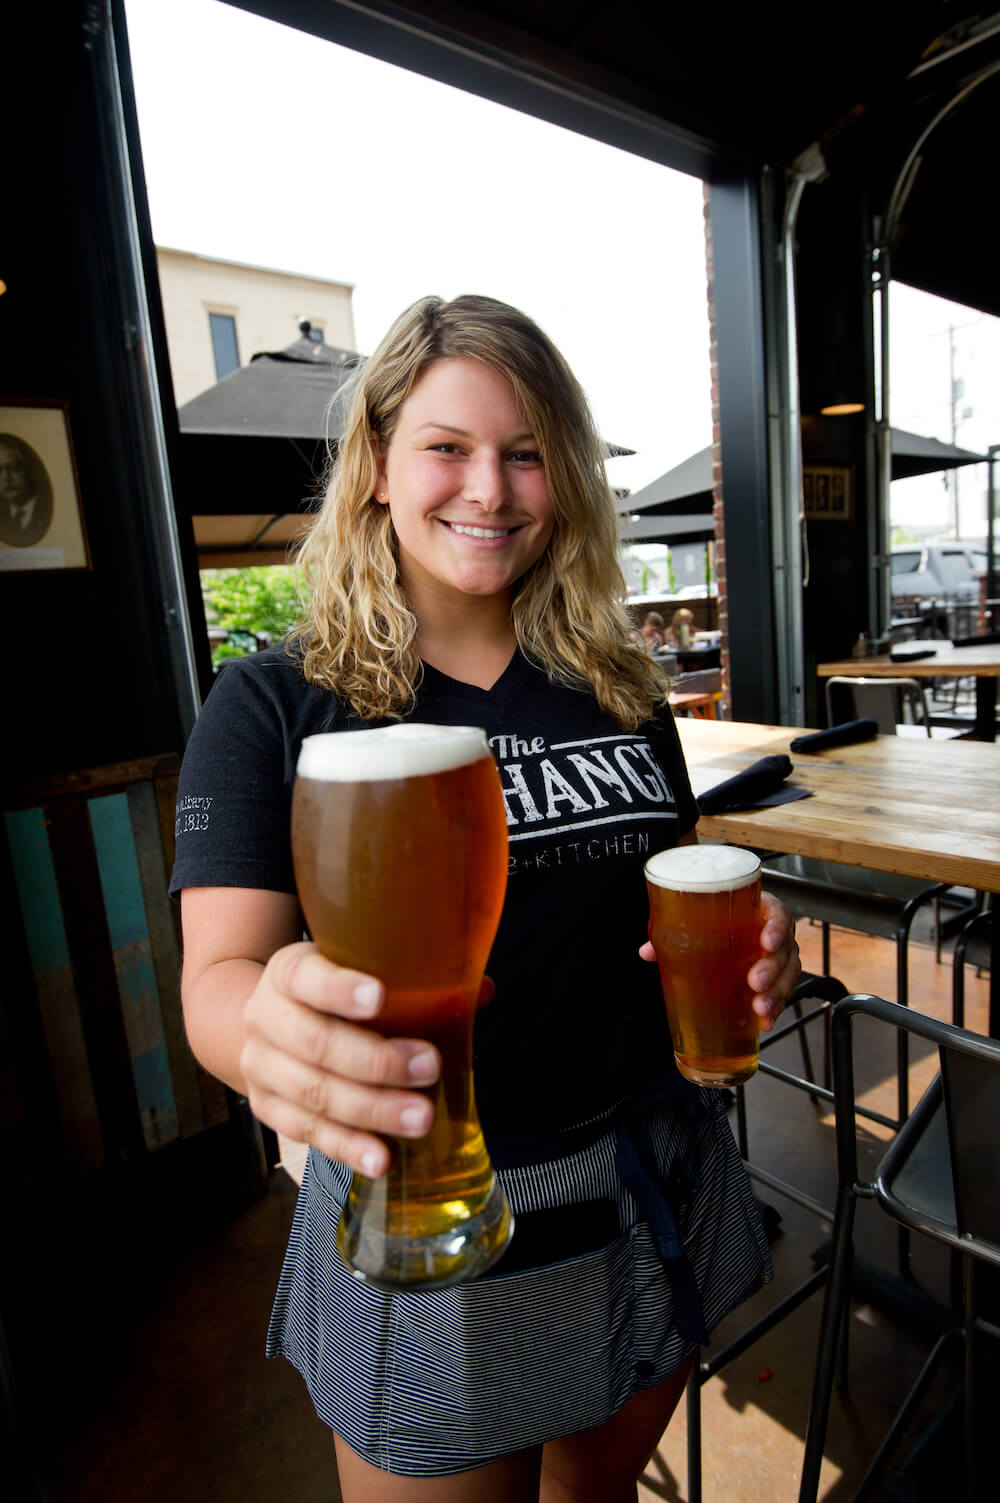 A server holds two beers to illustrate dinner and dining options in SoIN (southern Indiana).